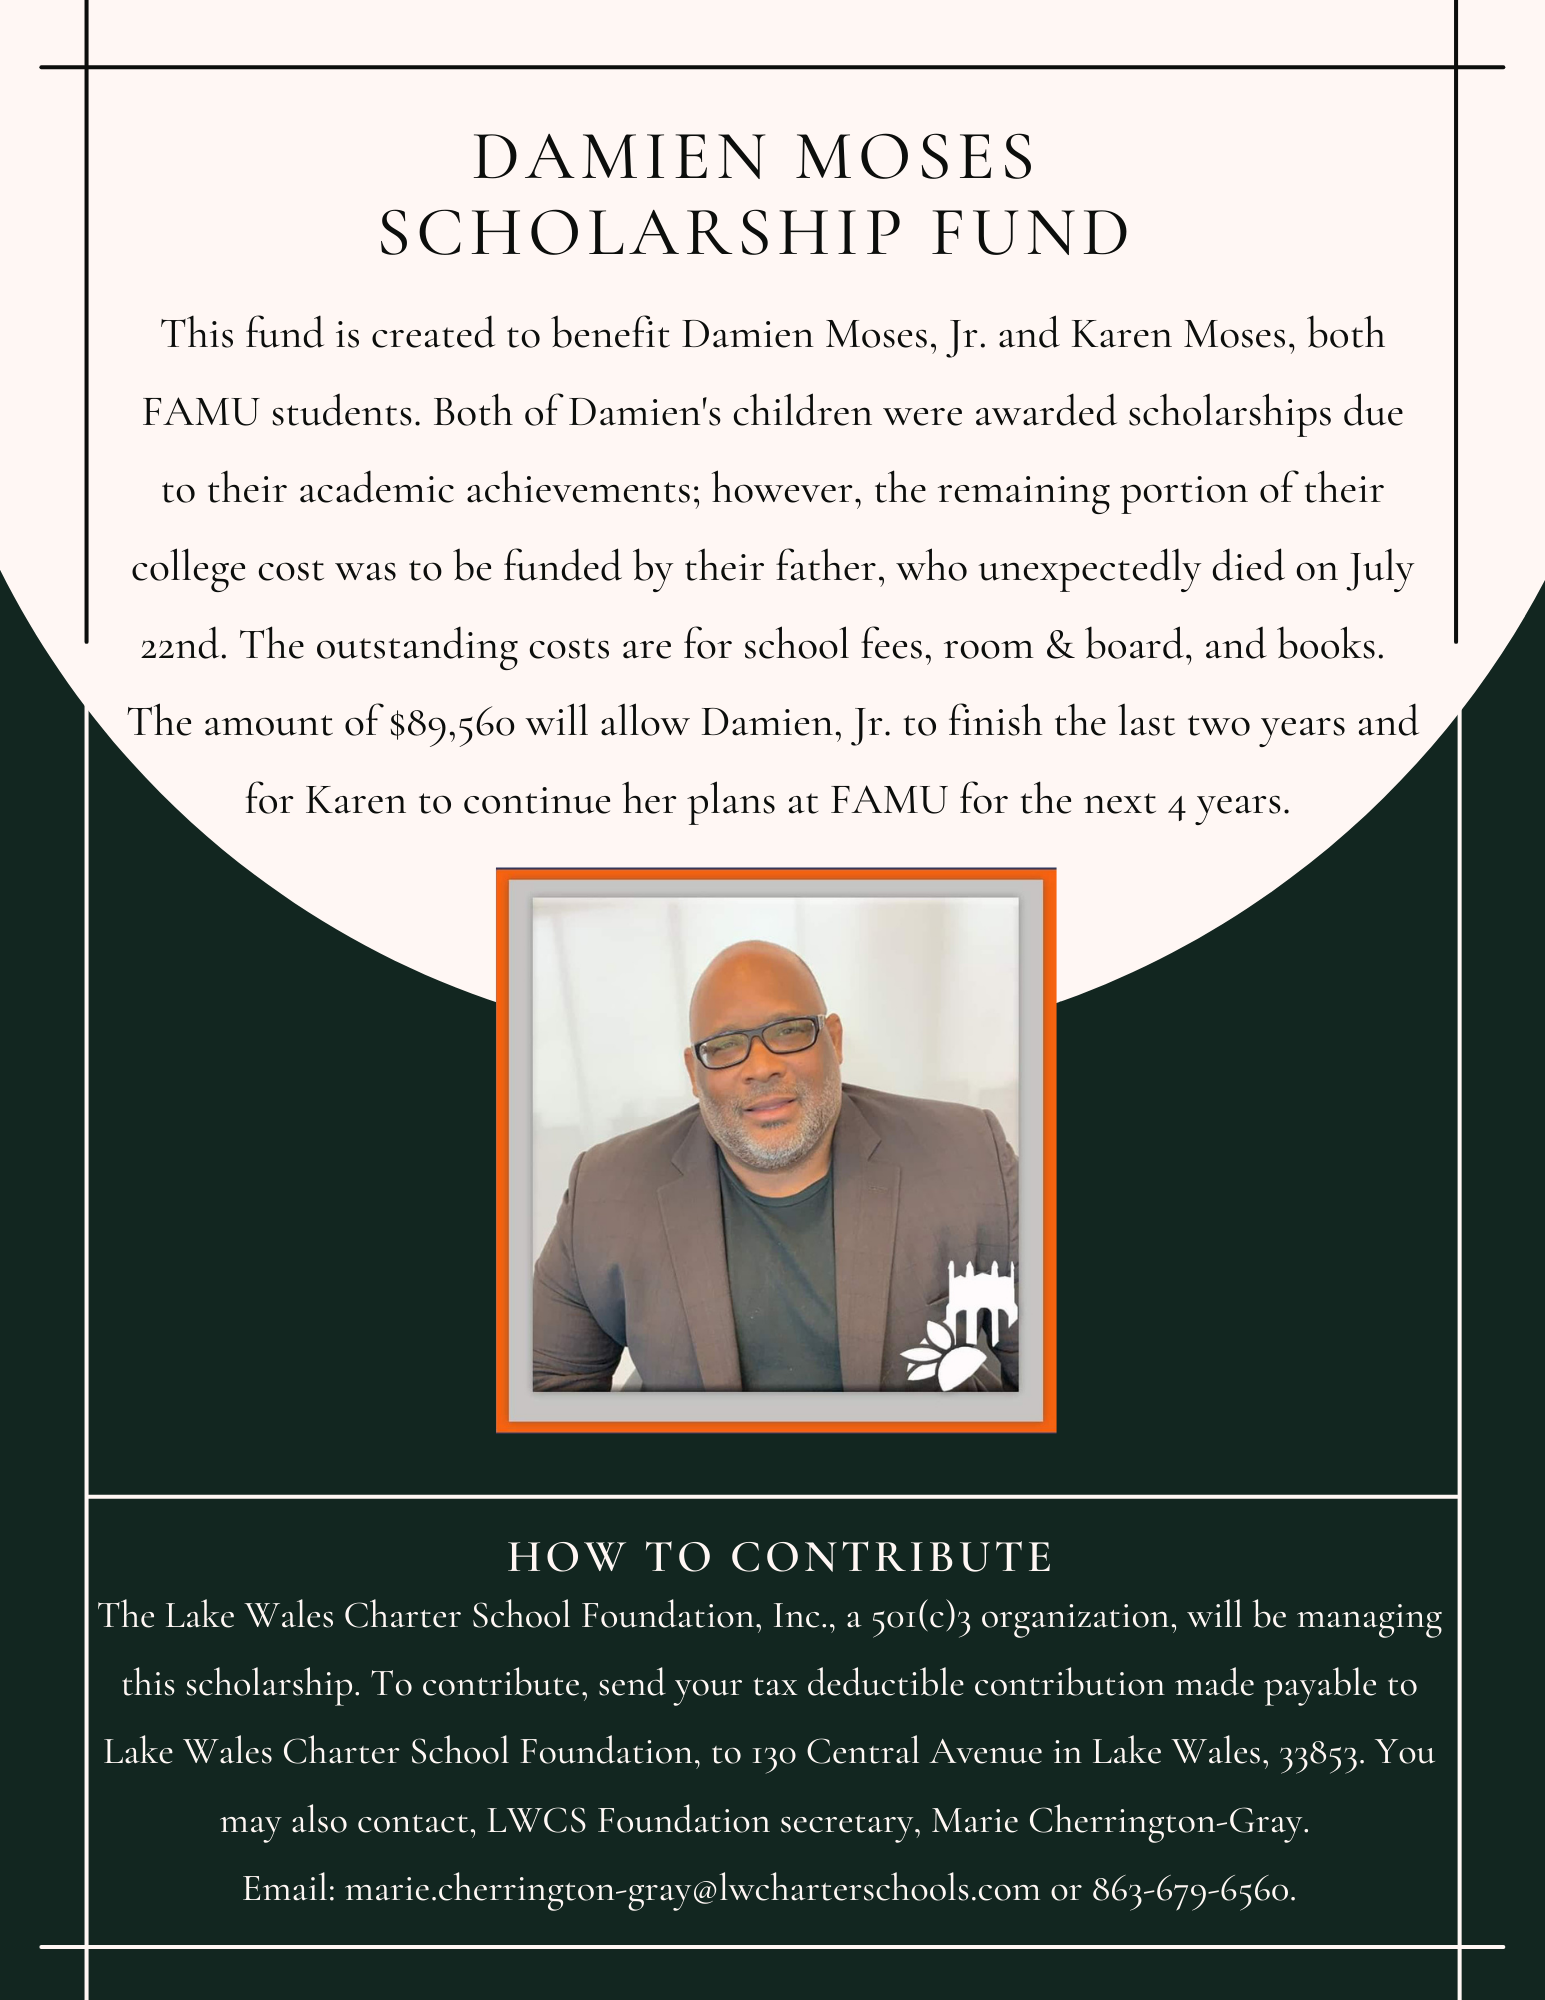 Dr. Damien Moses Scholarship